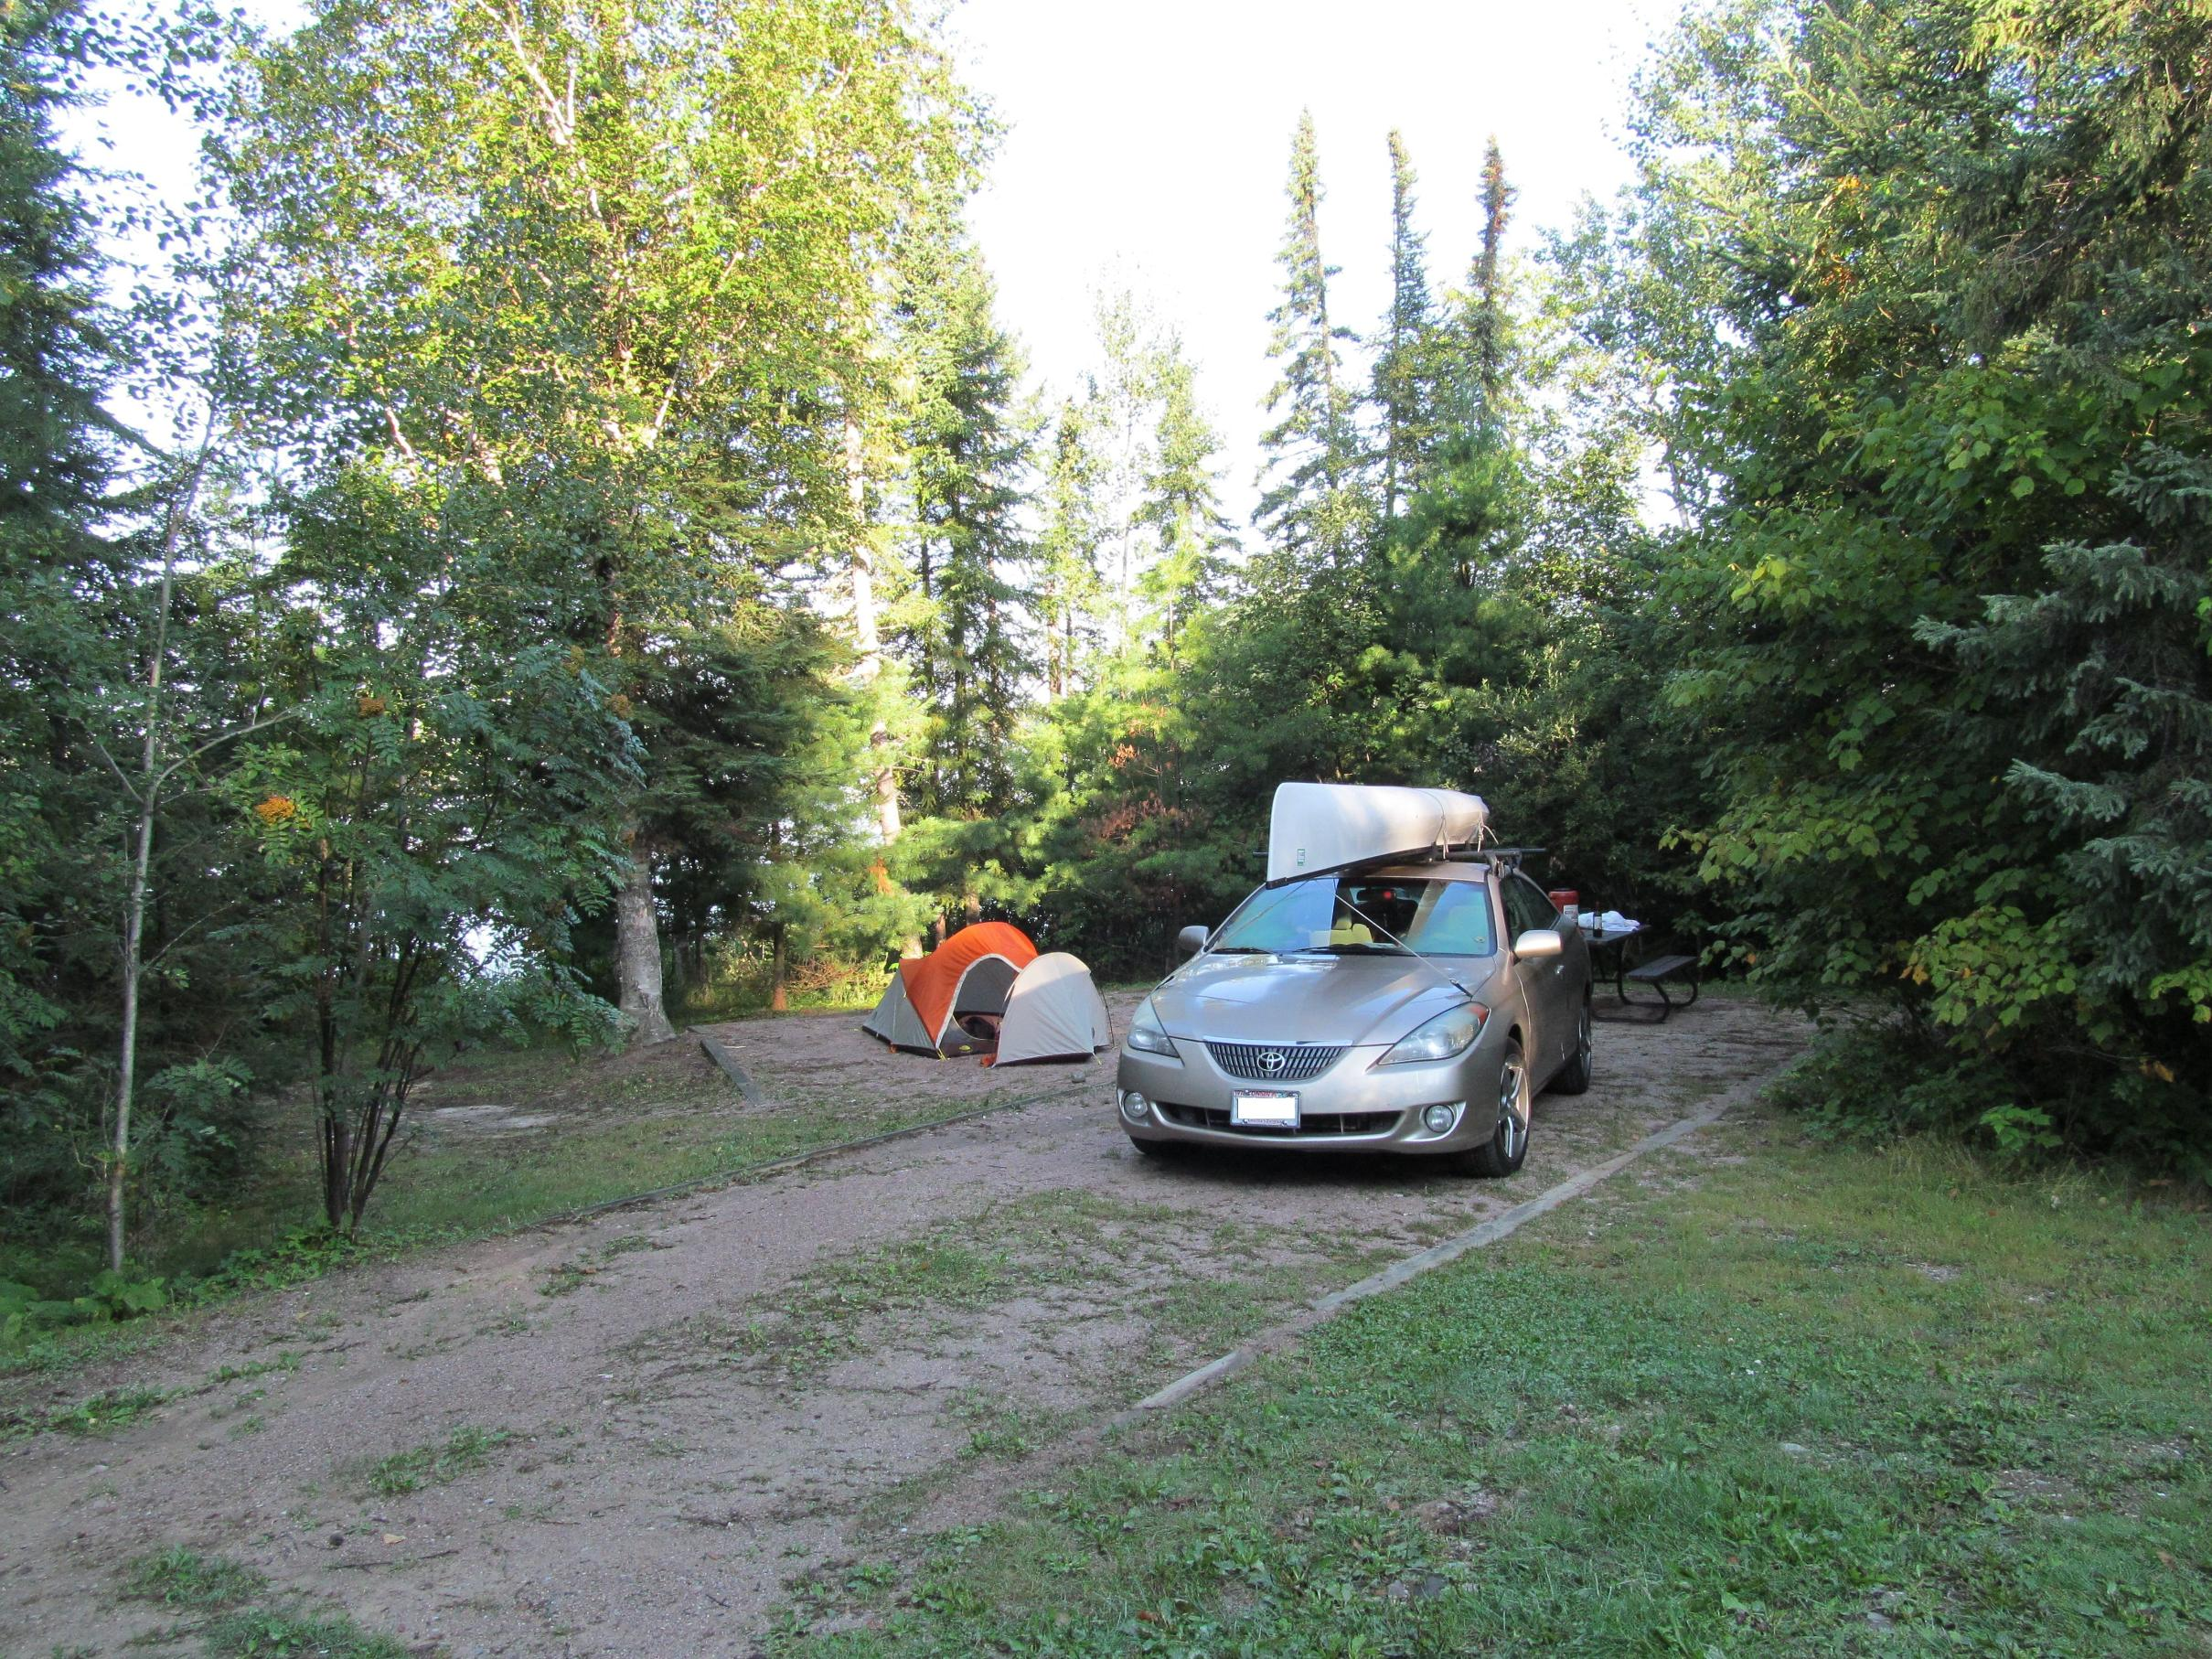 Campsite @ Dawson Trail before Morning Launch @ Nym Lake